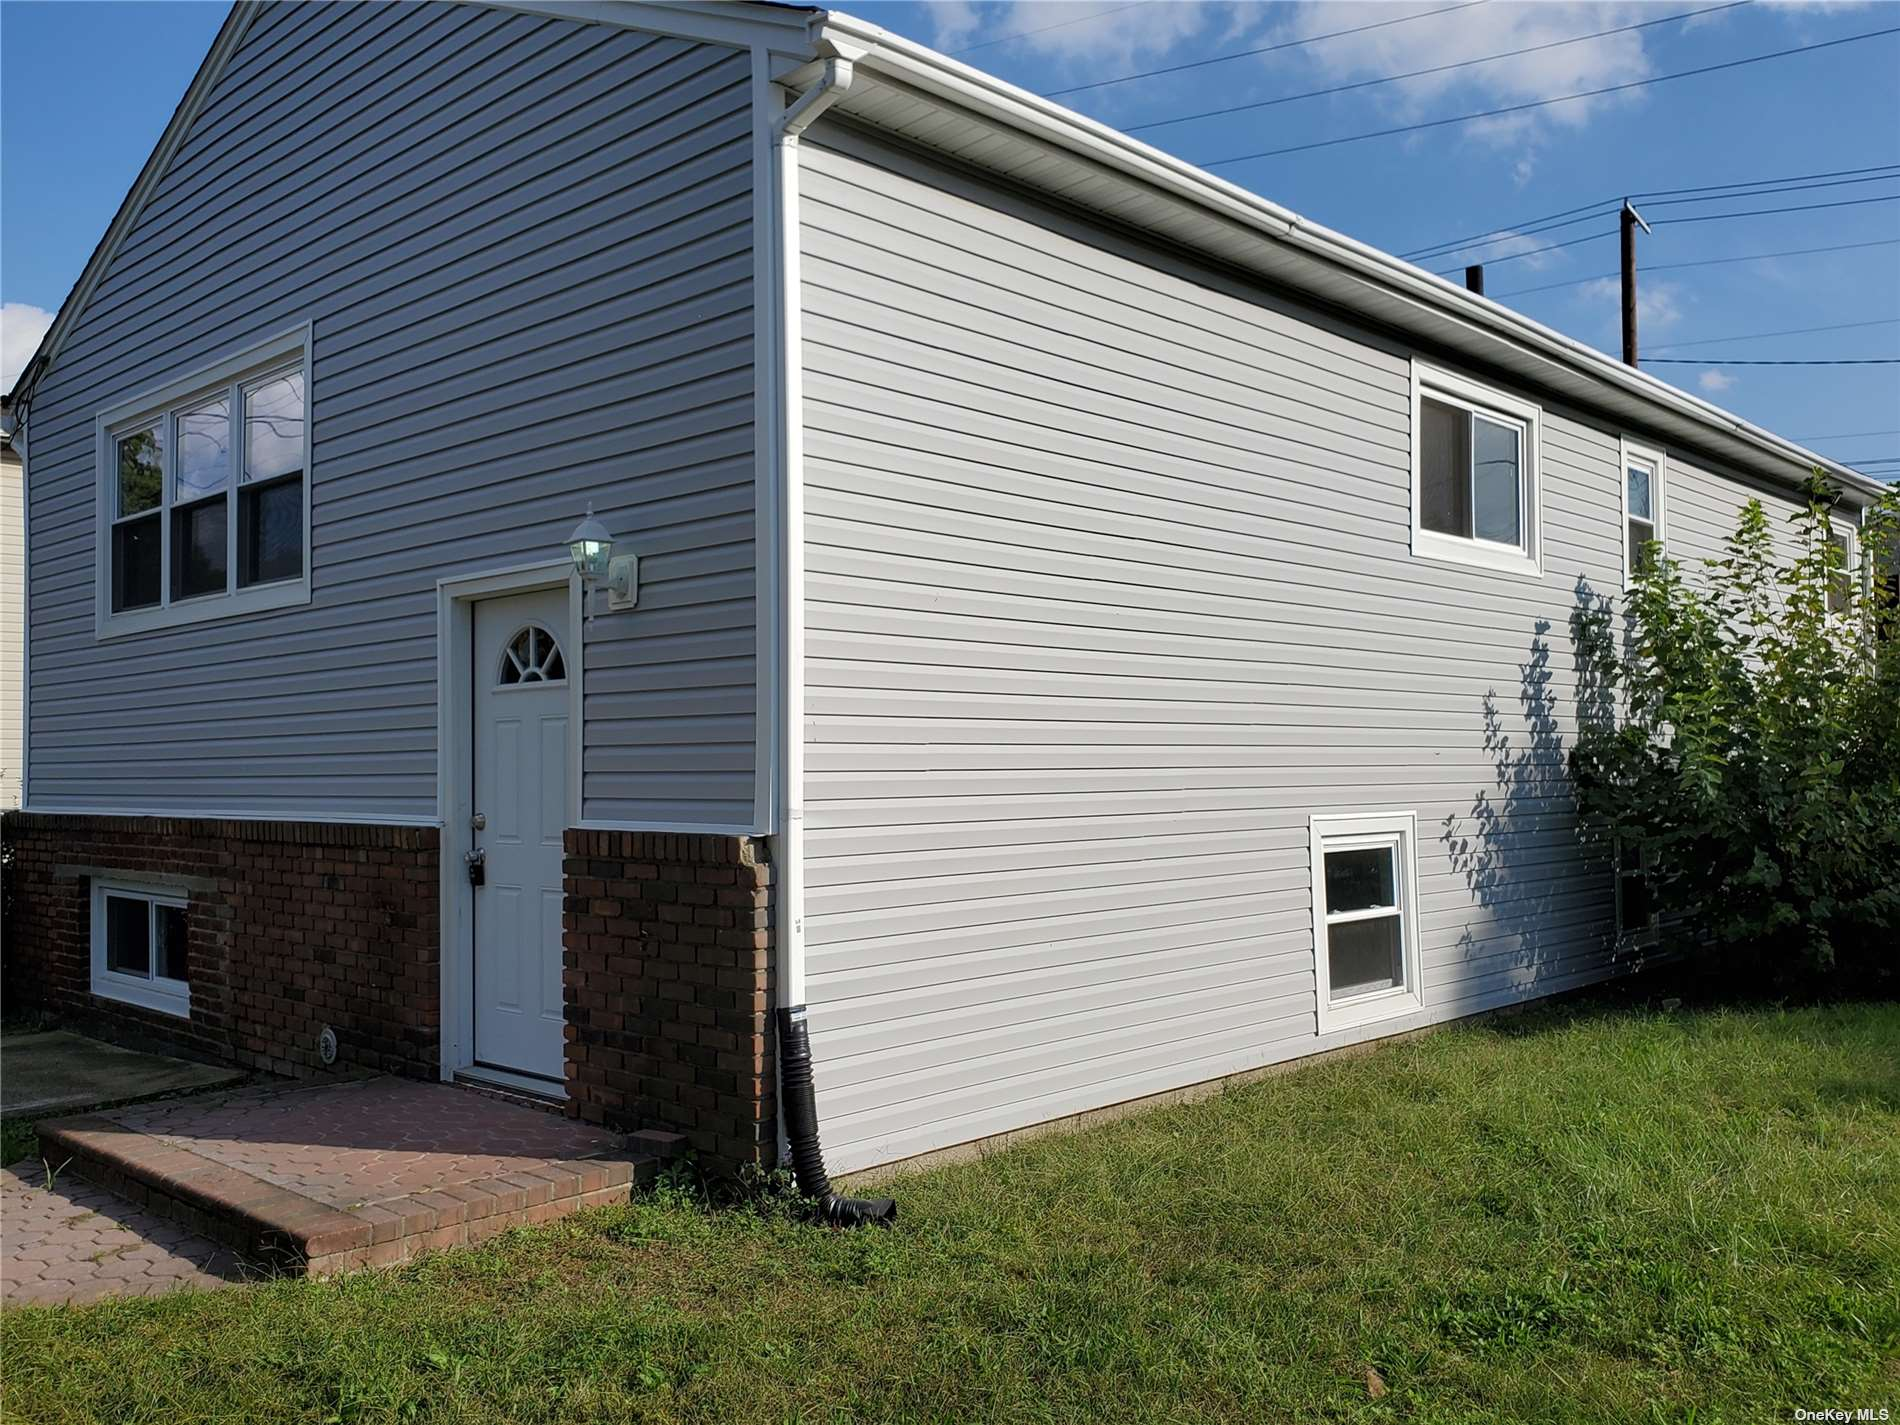 Renovated Hi-Ranch/Raised Ranch with ductwork for central air. Walking to the upper level consist of hardwood floor through out Lr, Dr, 3 bedrooms and Kitchen, Bath. Walking to lower level consist of Lr, Den, 2 bedrooms, and bath with Outside Entrance.